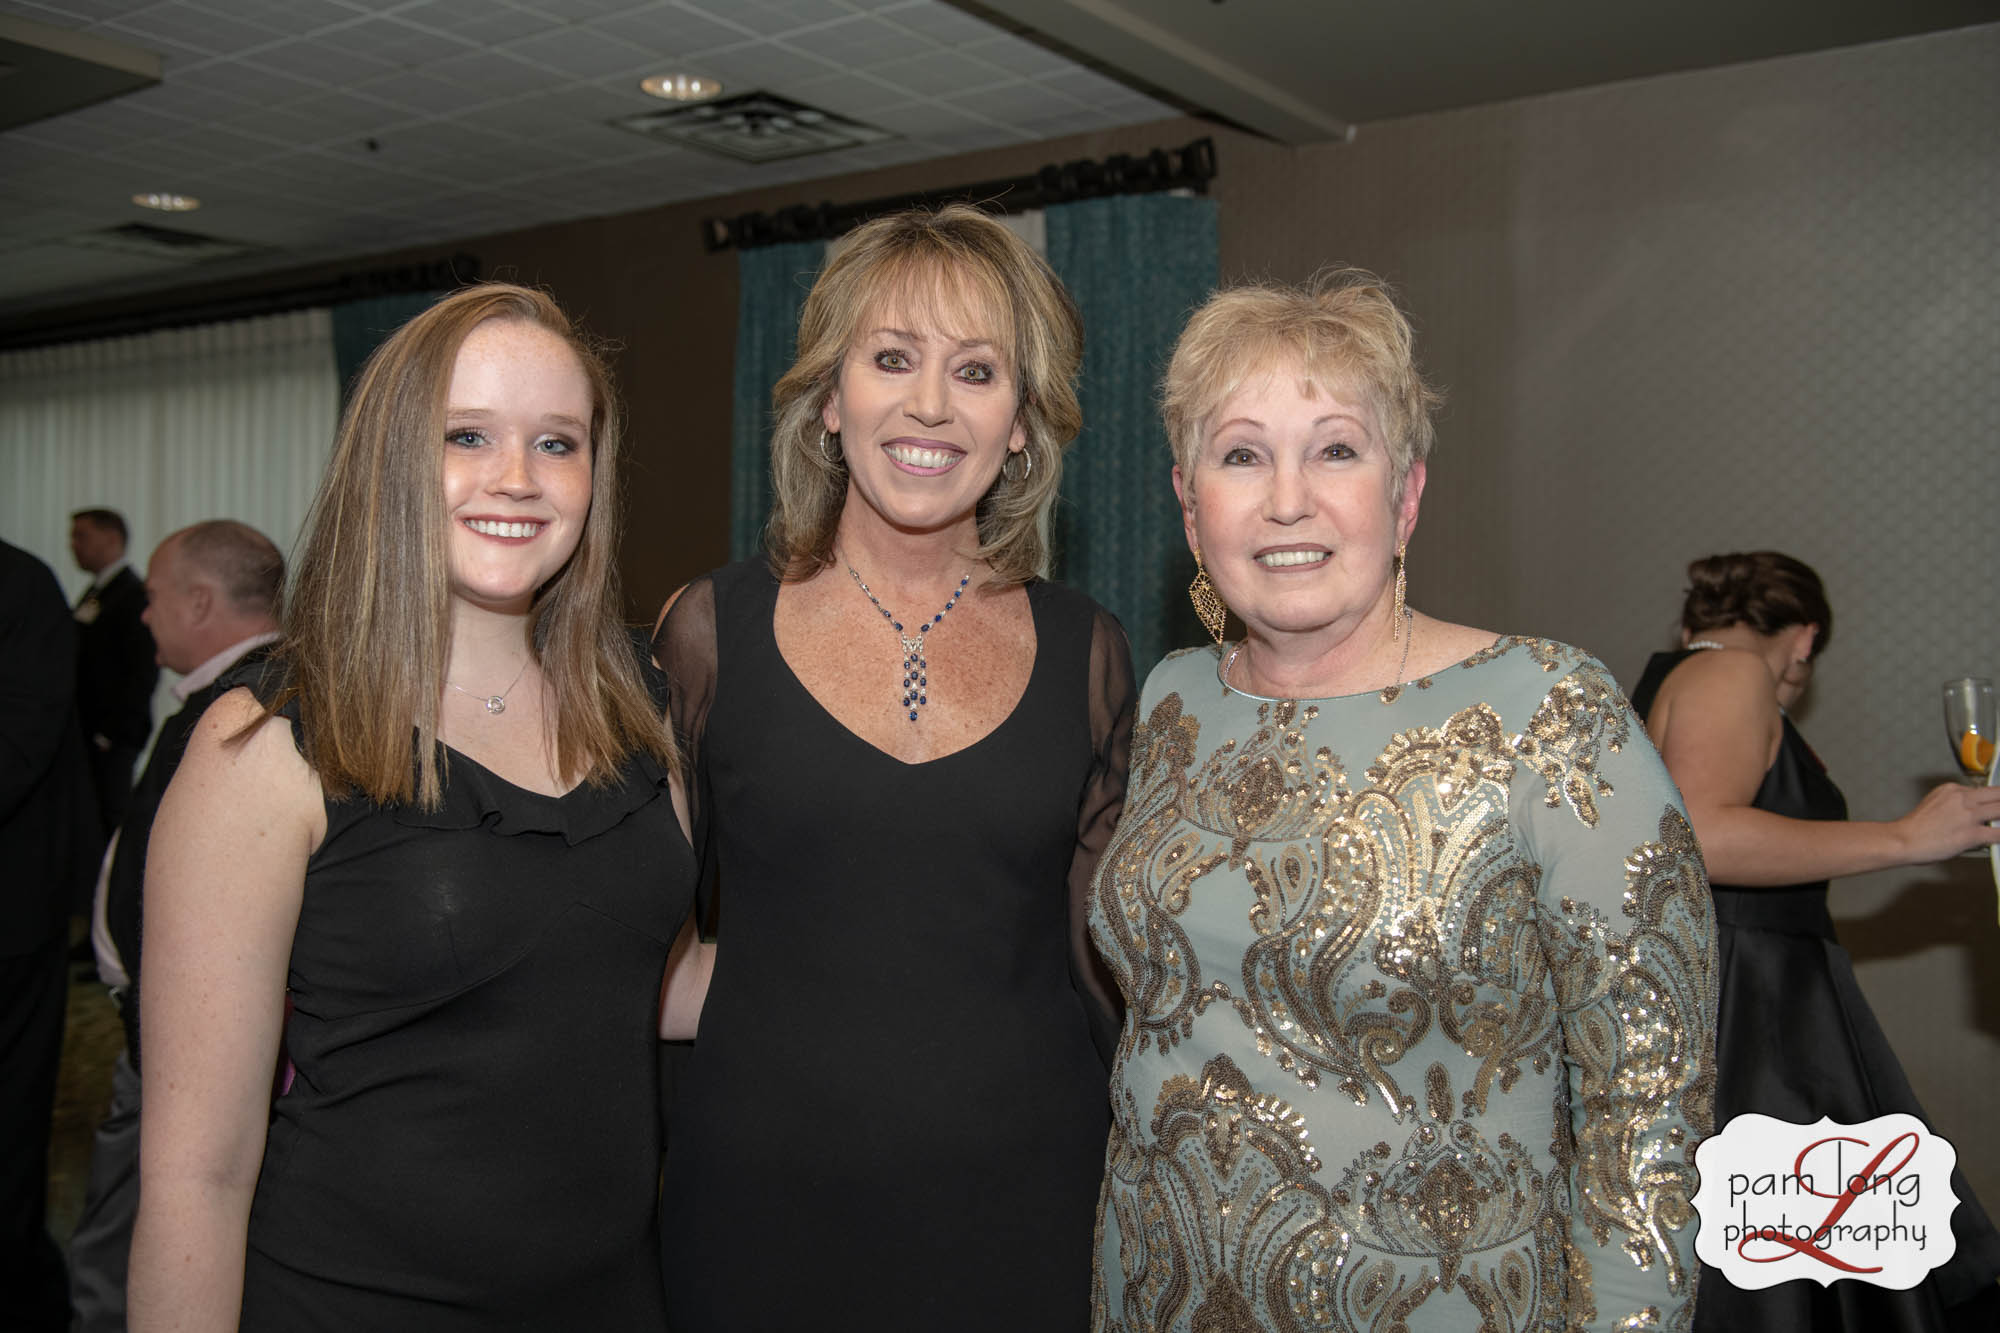 Pam-Long-Photography-HoCo-Chamber-20191005-36